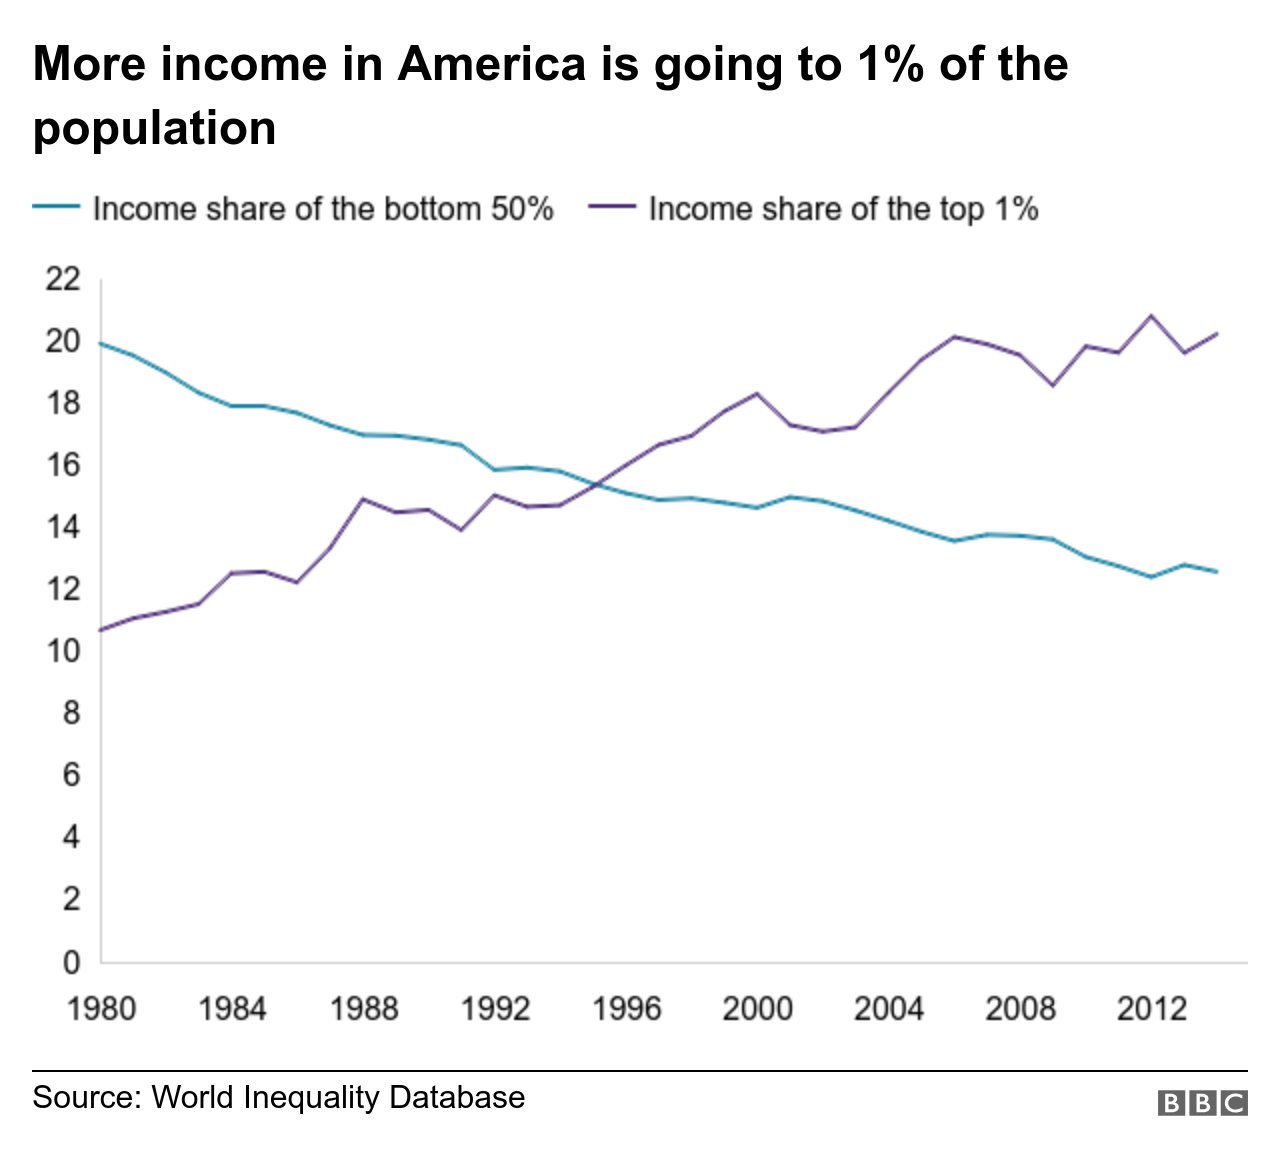 Chart shows that since 1980 a greater share of American income is going to 1% of the population (up to more than 20% in 2012) and less to the bottom 50% (down to about 12% in 2012)